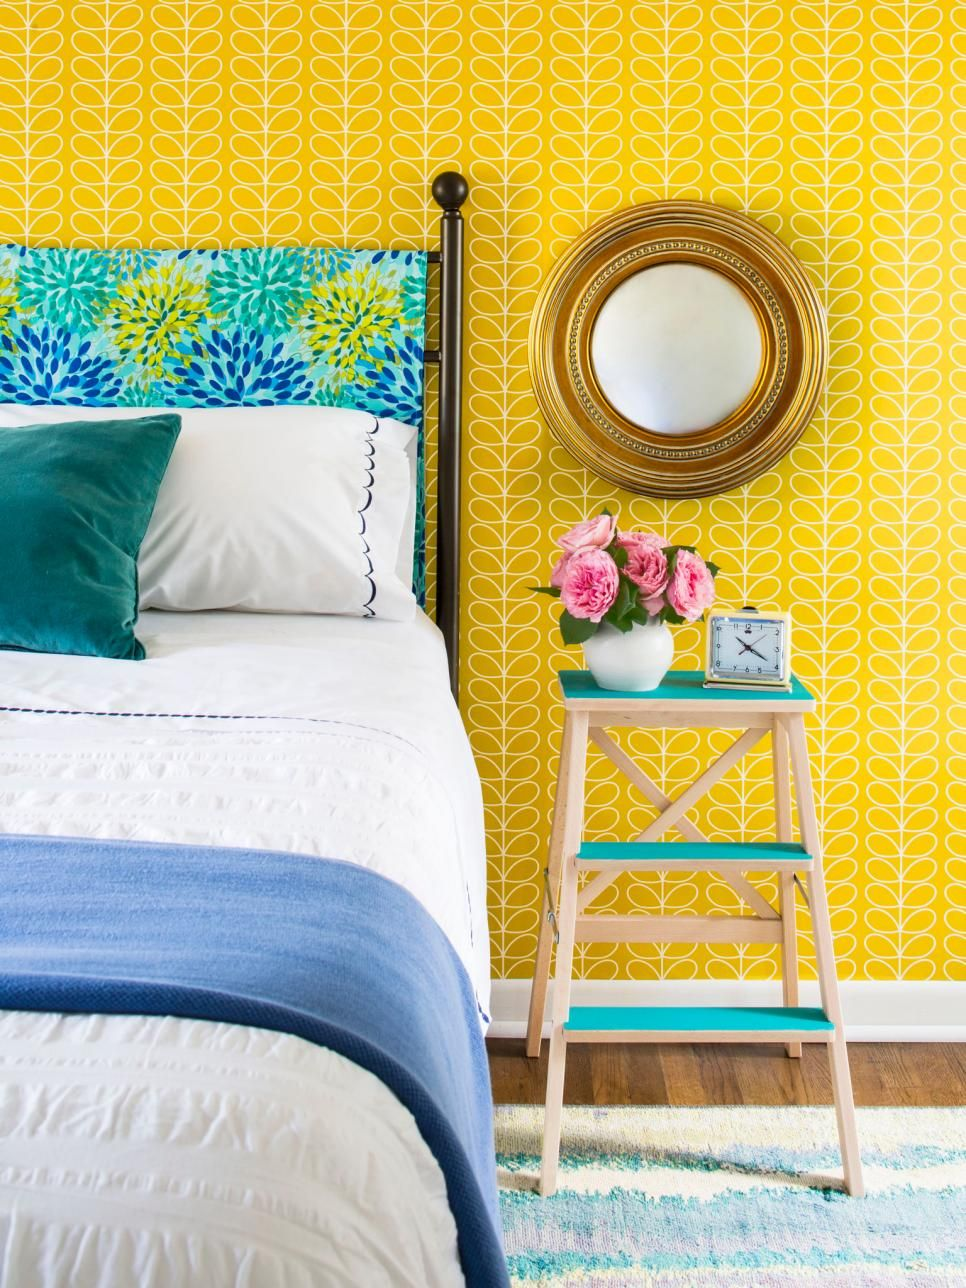 5 Ways to Style Your Home With Items You Already Have | Hgtv ...